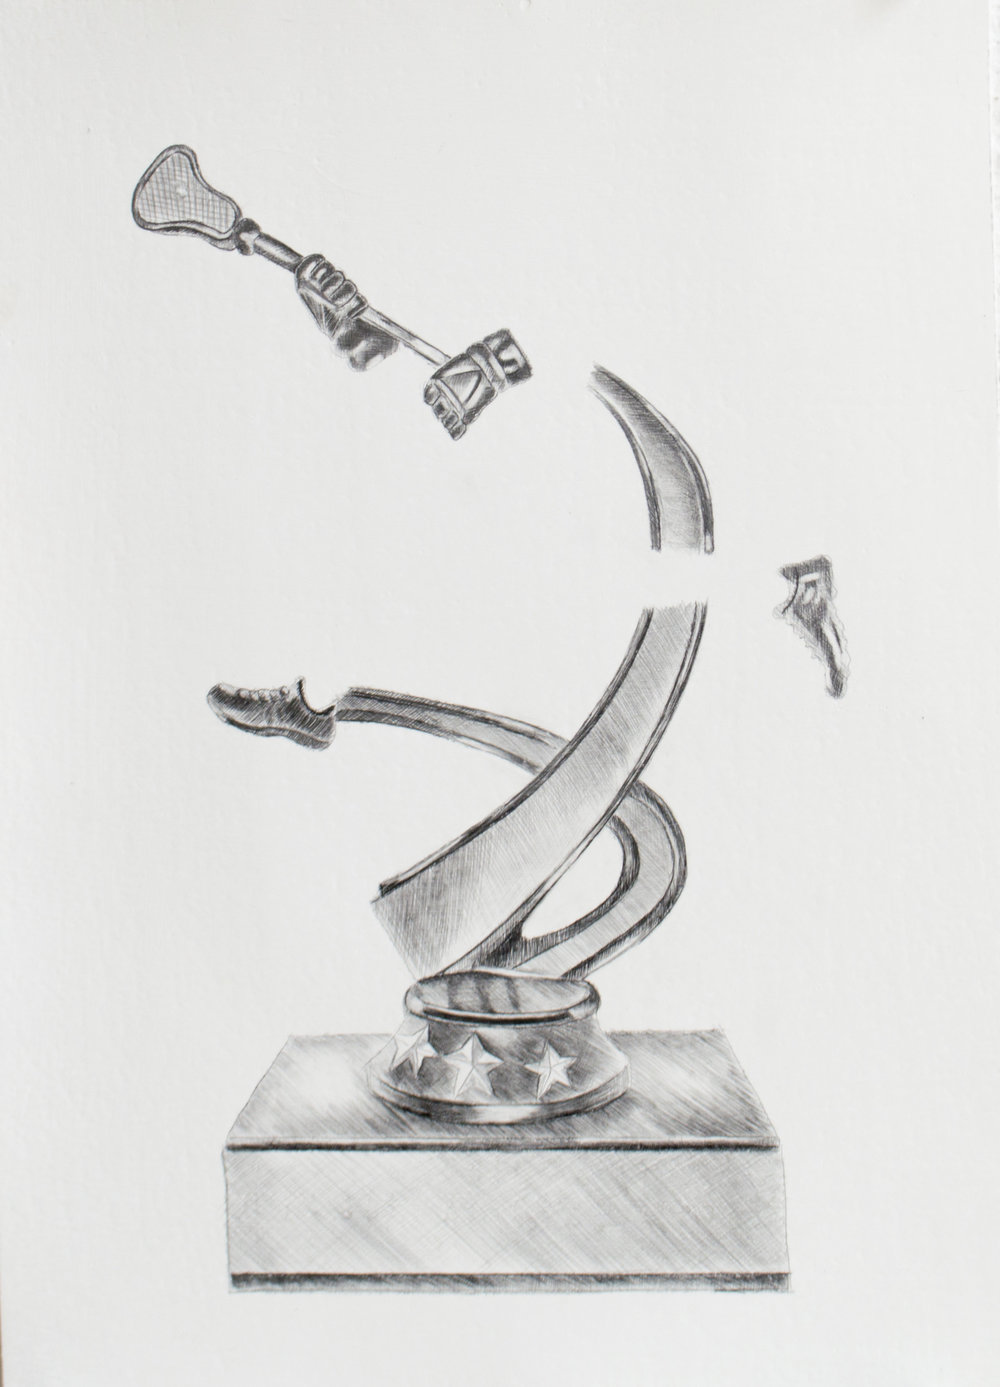 It's a privilege to be able to wake up early and hustle for what you believe in, 9.5 x 13 inches, silverpoint and graphite on paper. 2019